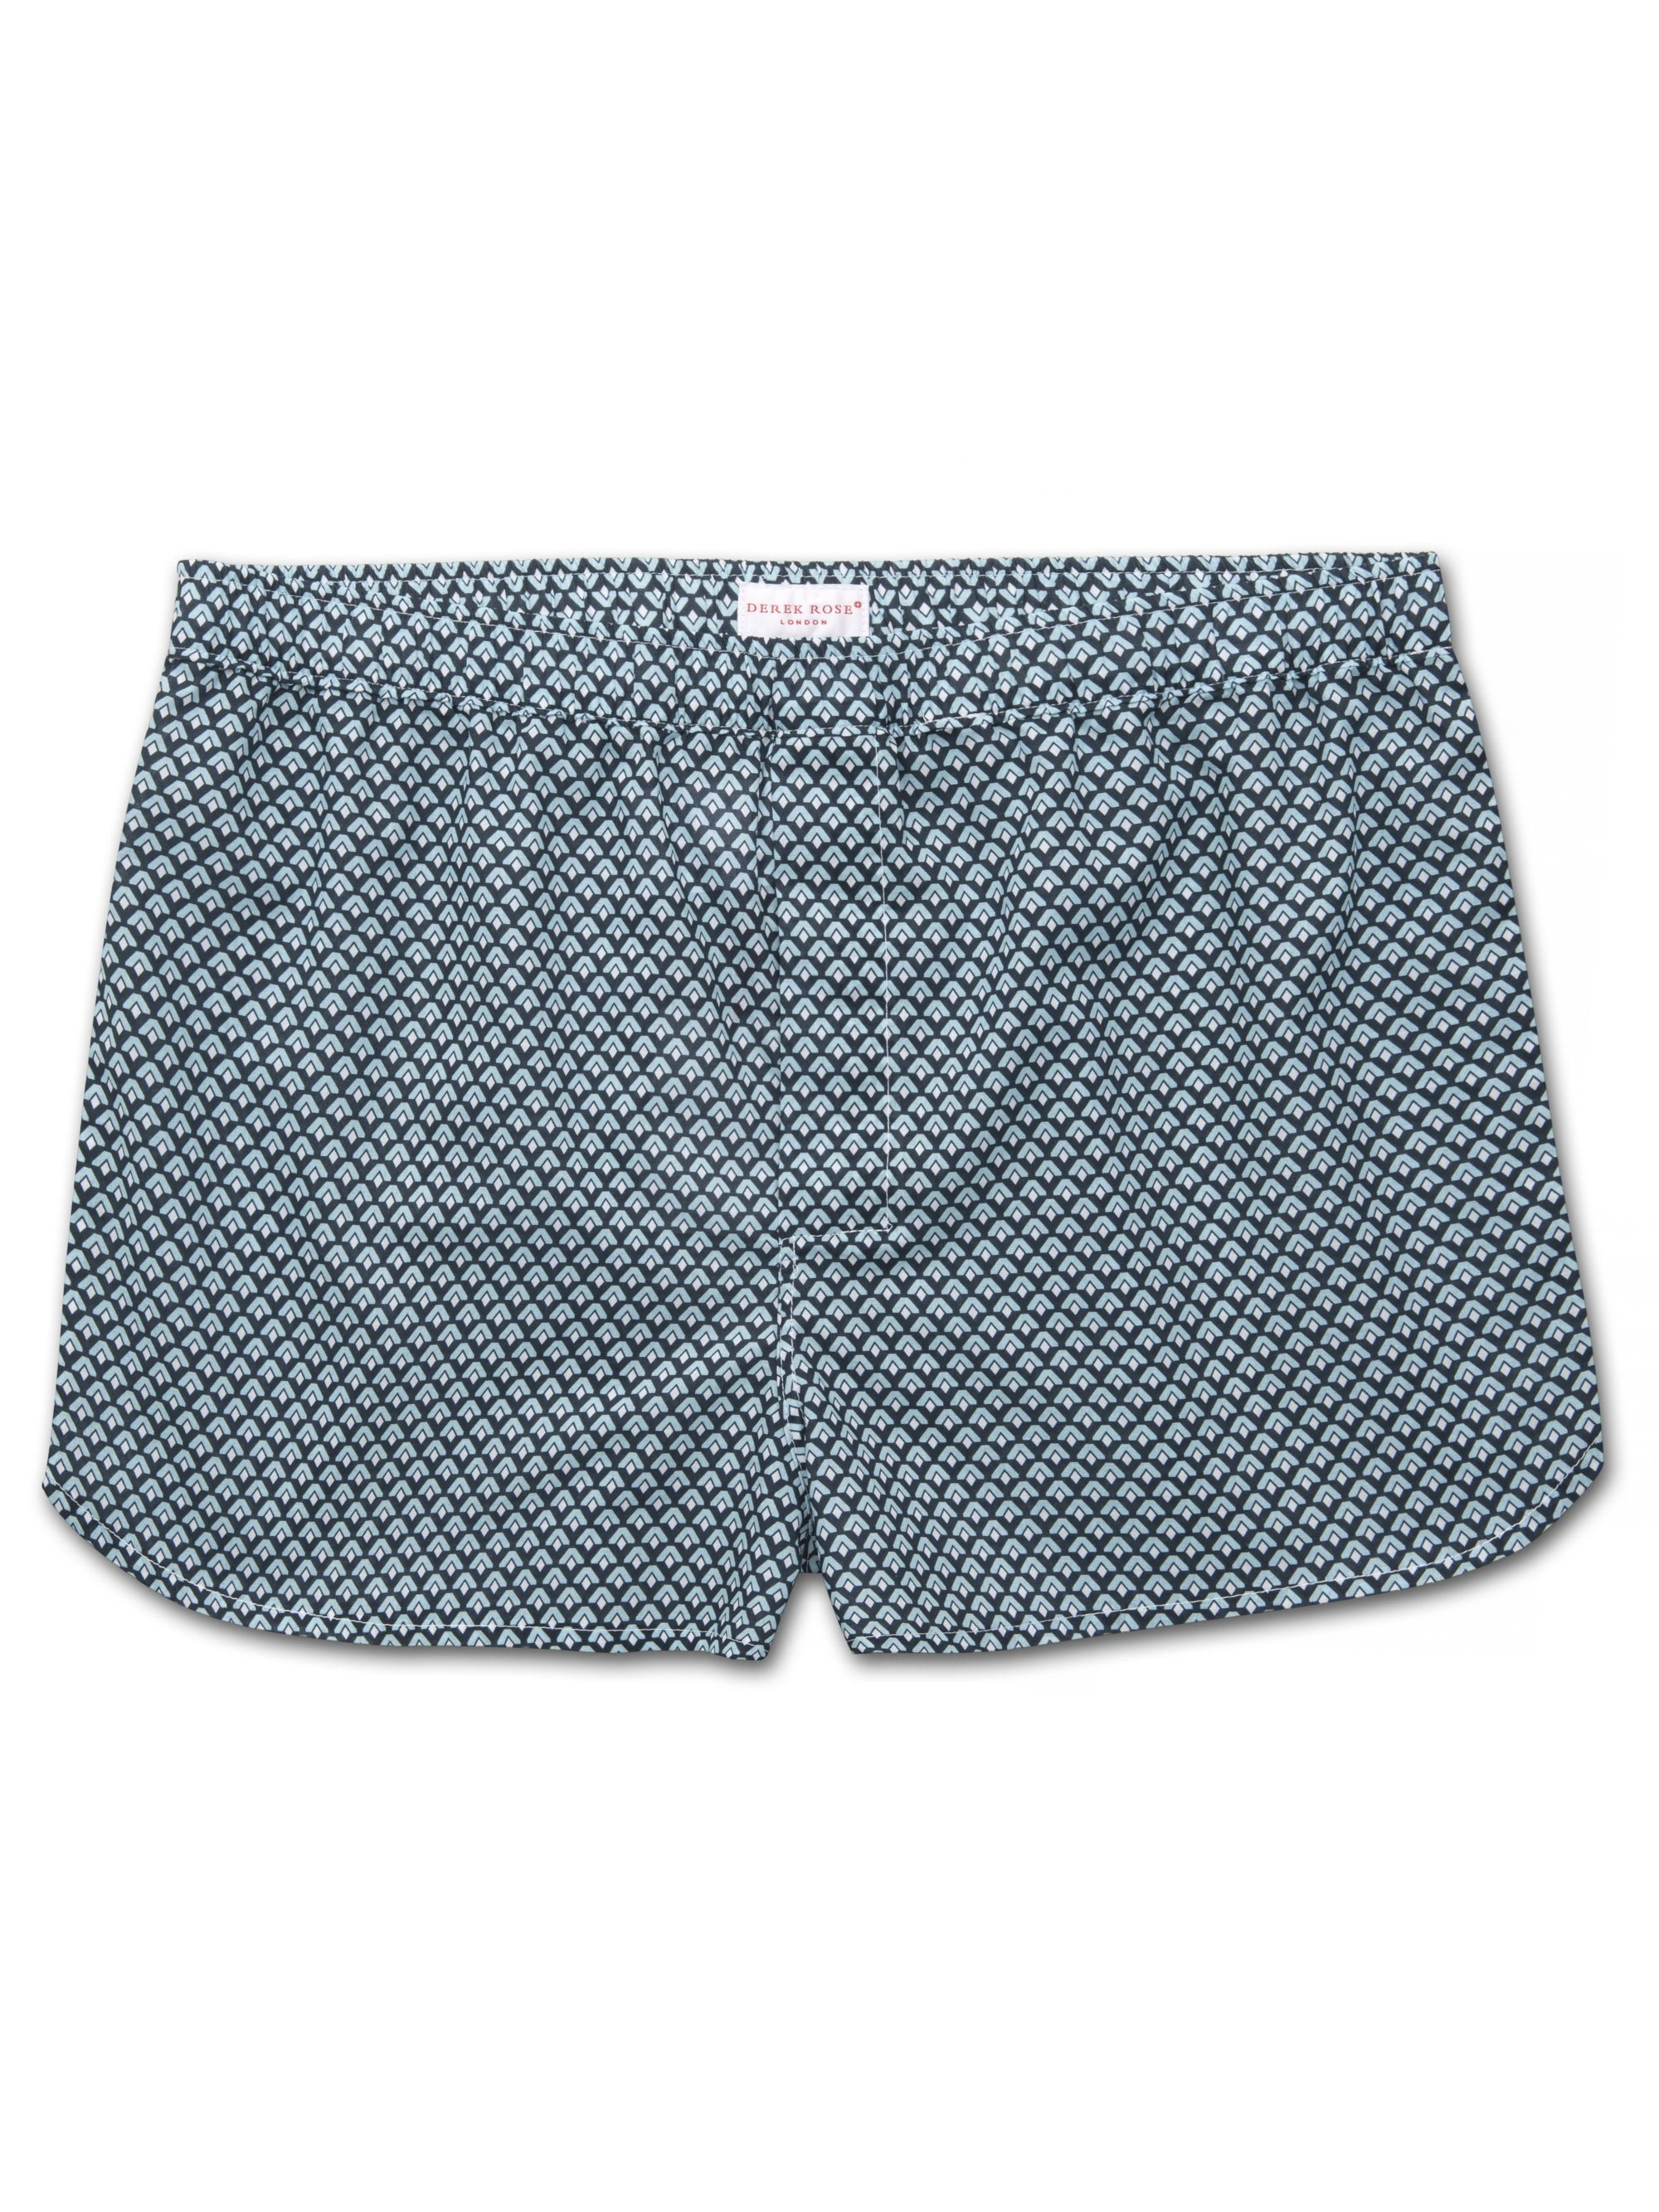 Men's Modern Fit Boxer Shorts Ledbury 31 Cotton Batiste Navy